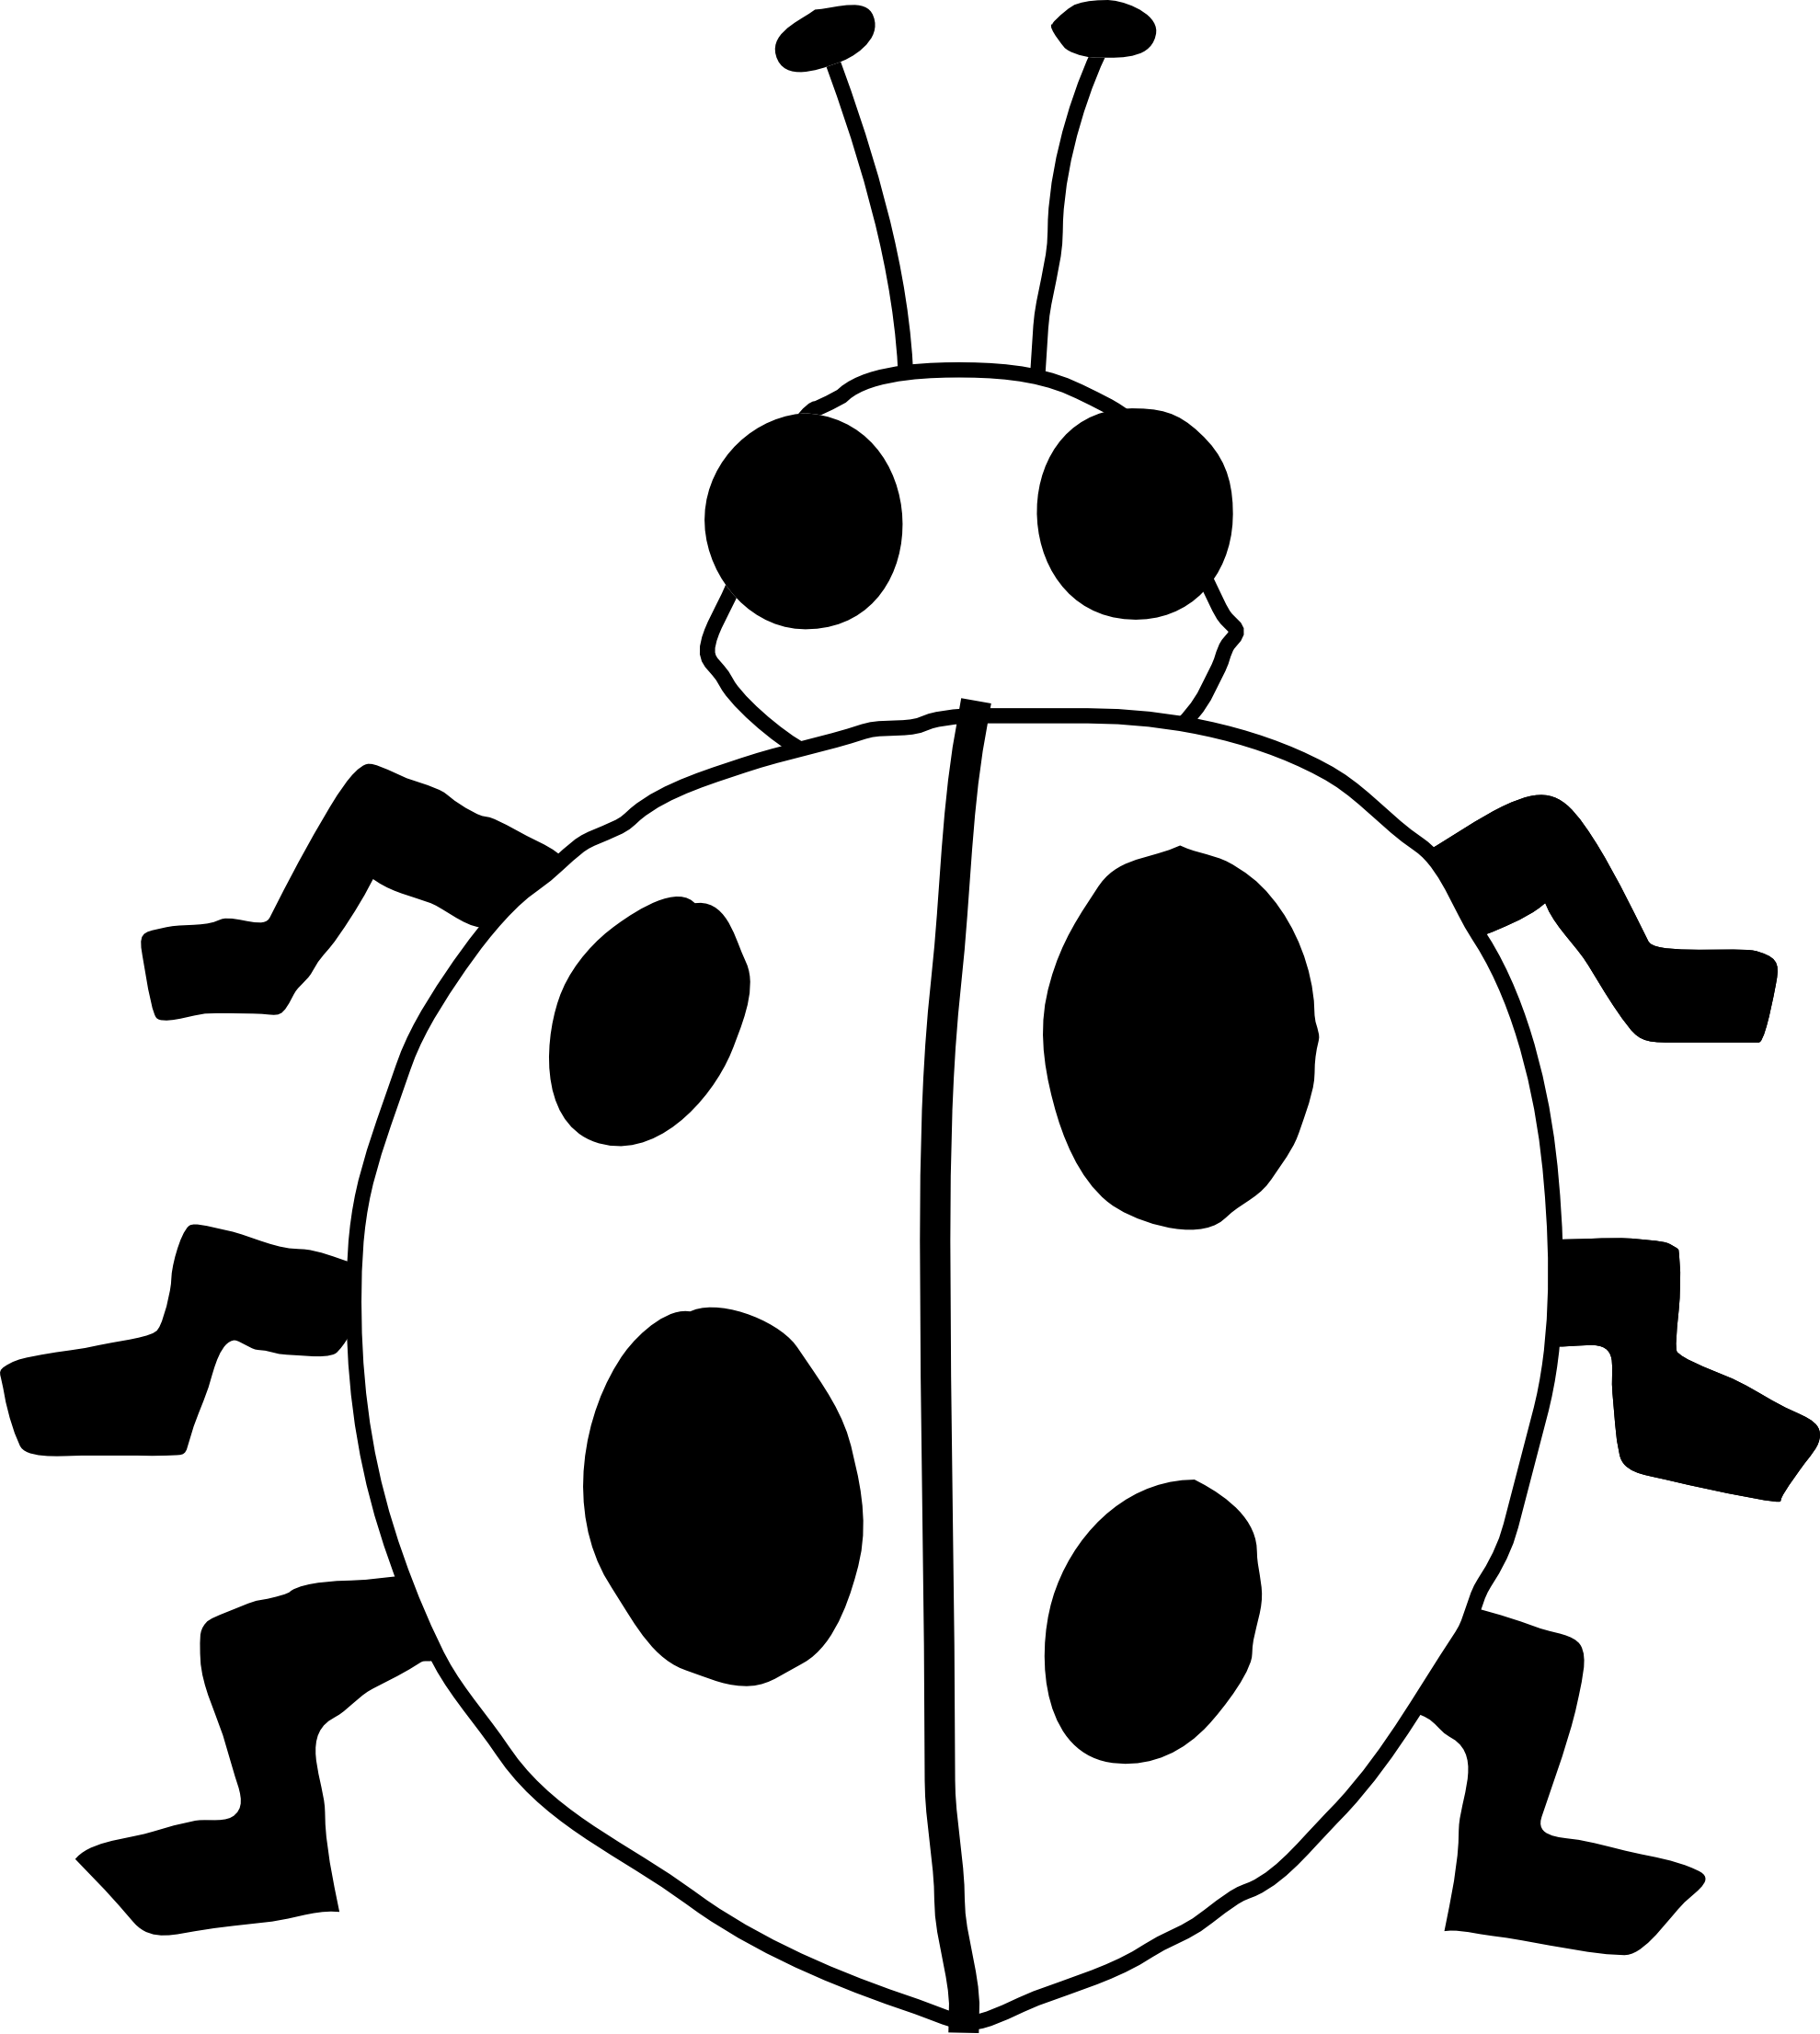 Ladybug black and white. Queen clipart outline